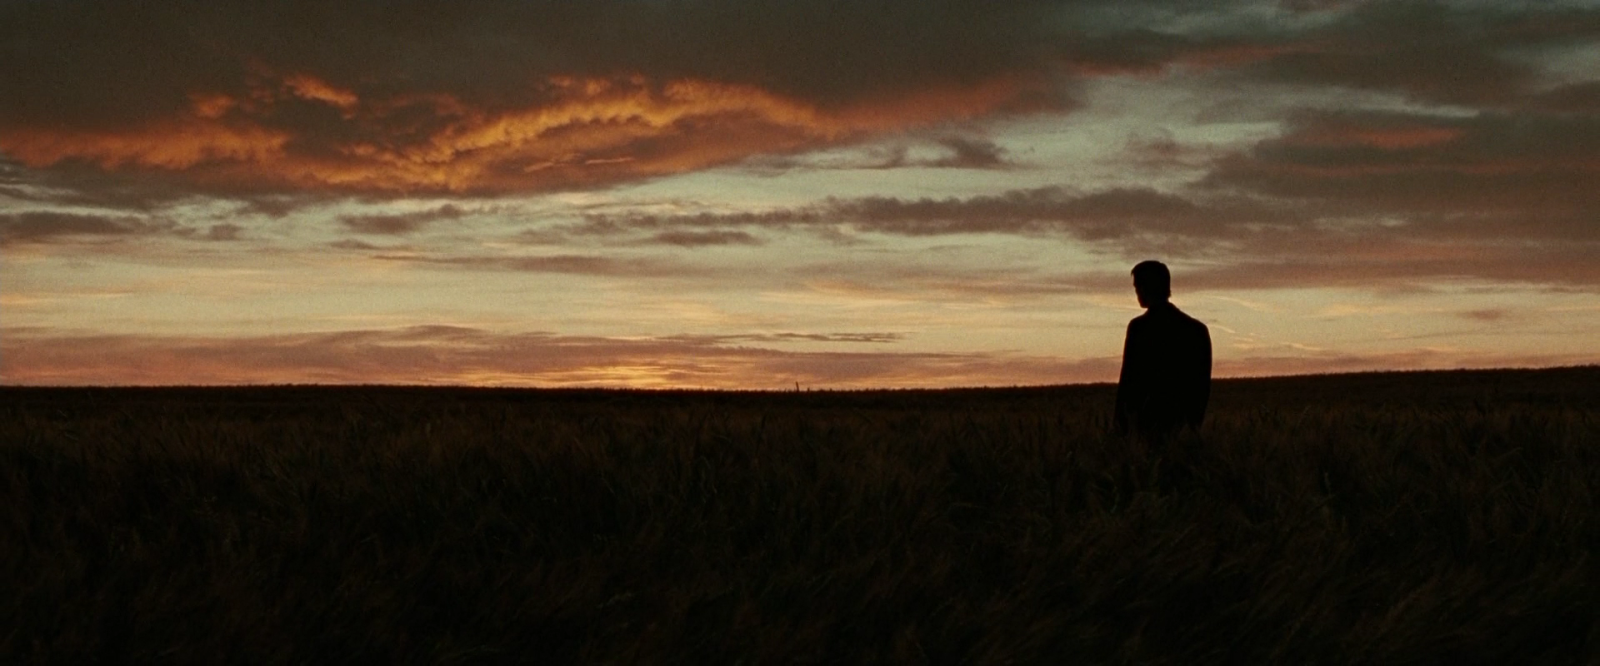 The Assassination of Jesse James by the Coward Robert Ford (Andrew ...